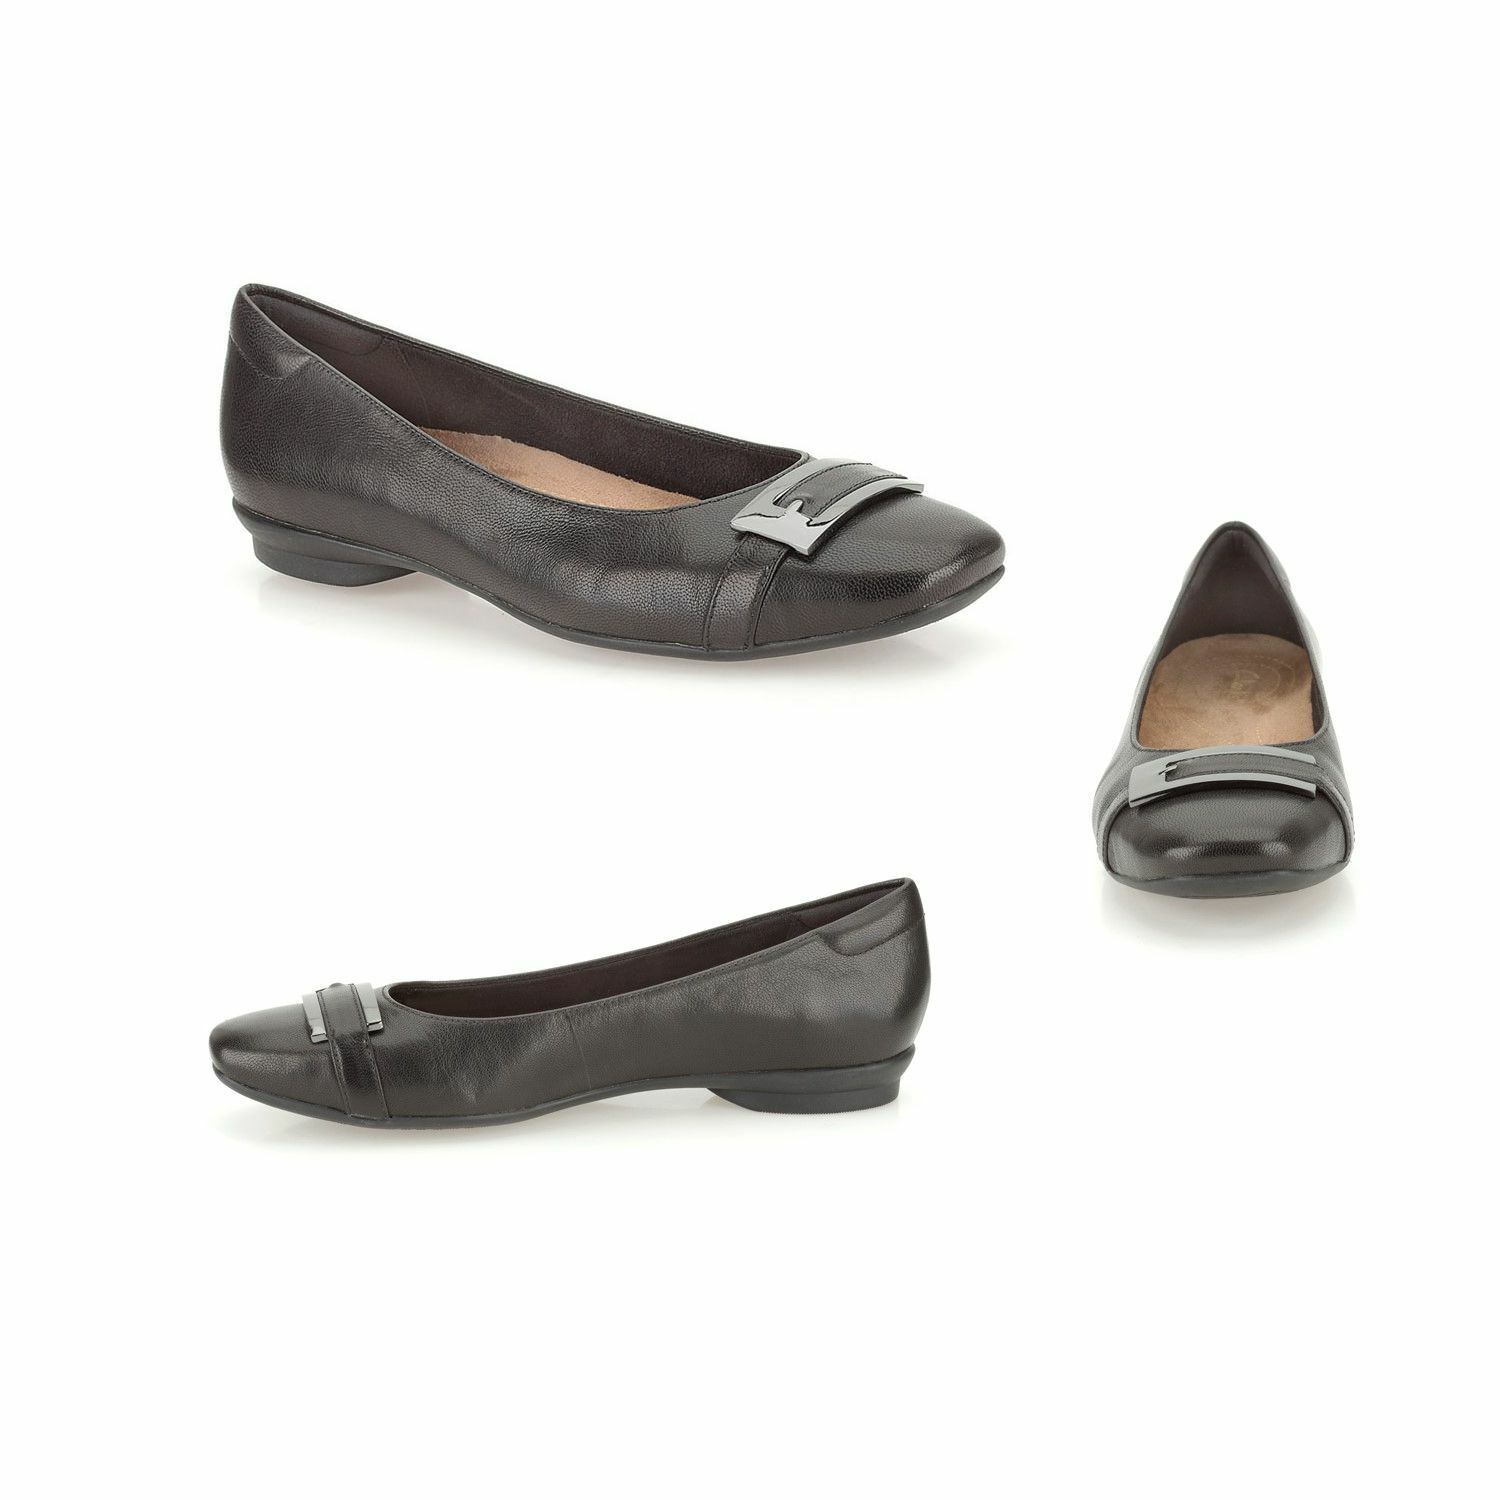 LADIES Damenschuhe BLACK CLARKS CANDRA GLARE COMFORTABLE WIDE COMFORTABLE GLARE FLATS WORK CASUAL Schuhe 113f39